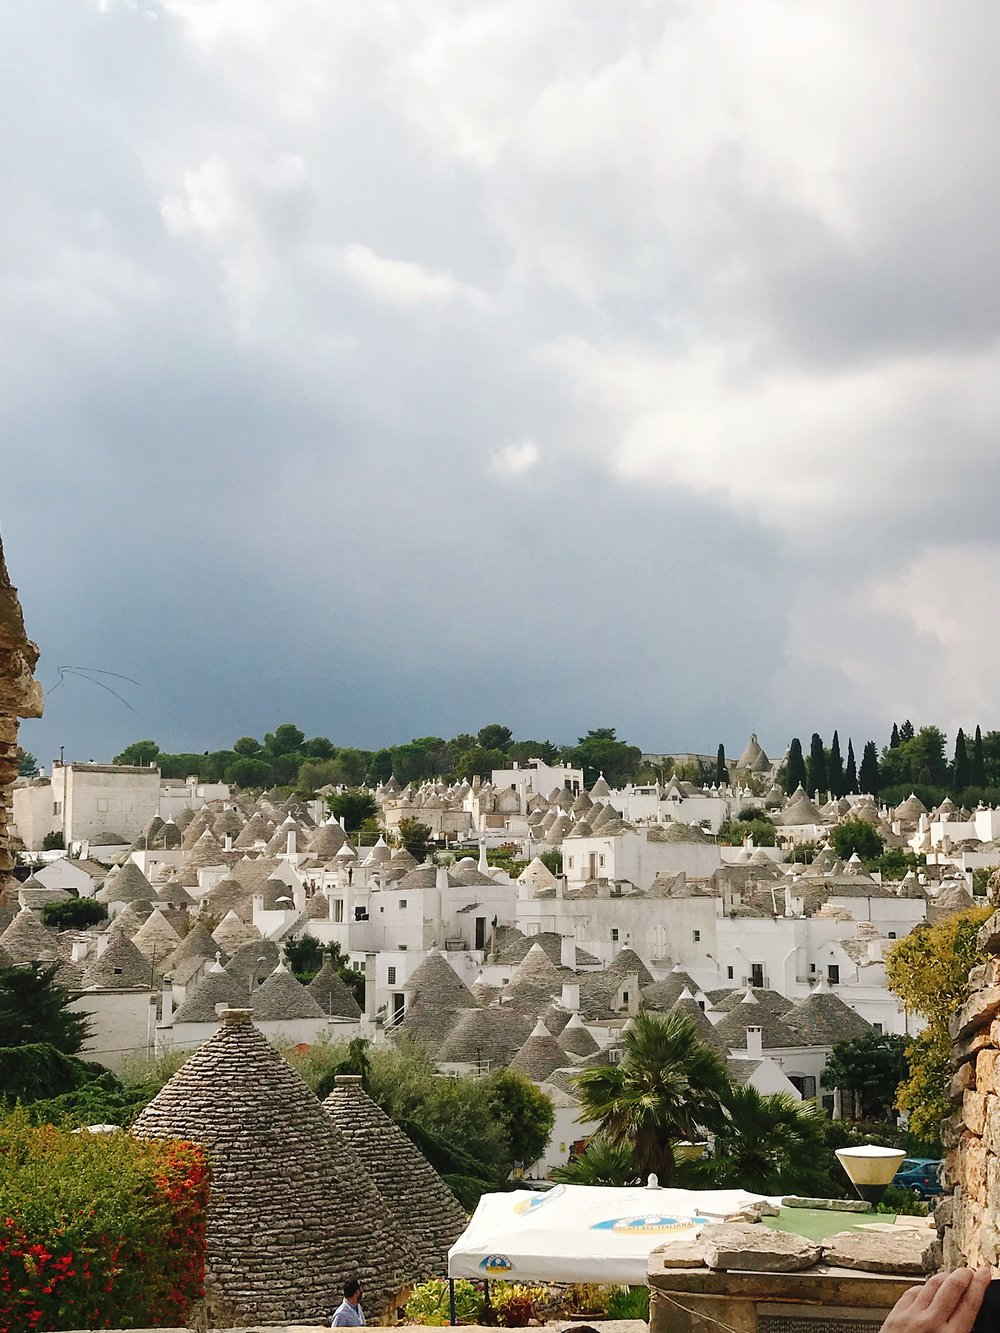 Alberobello- The sun may not have been shining, but that didn't hinder me!